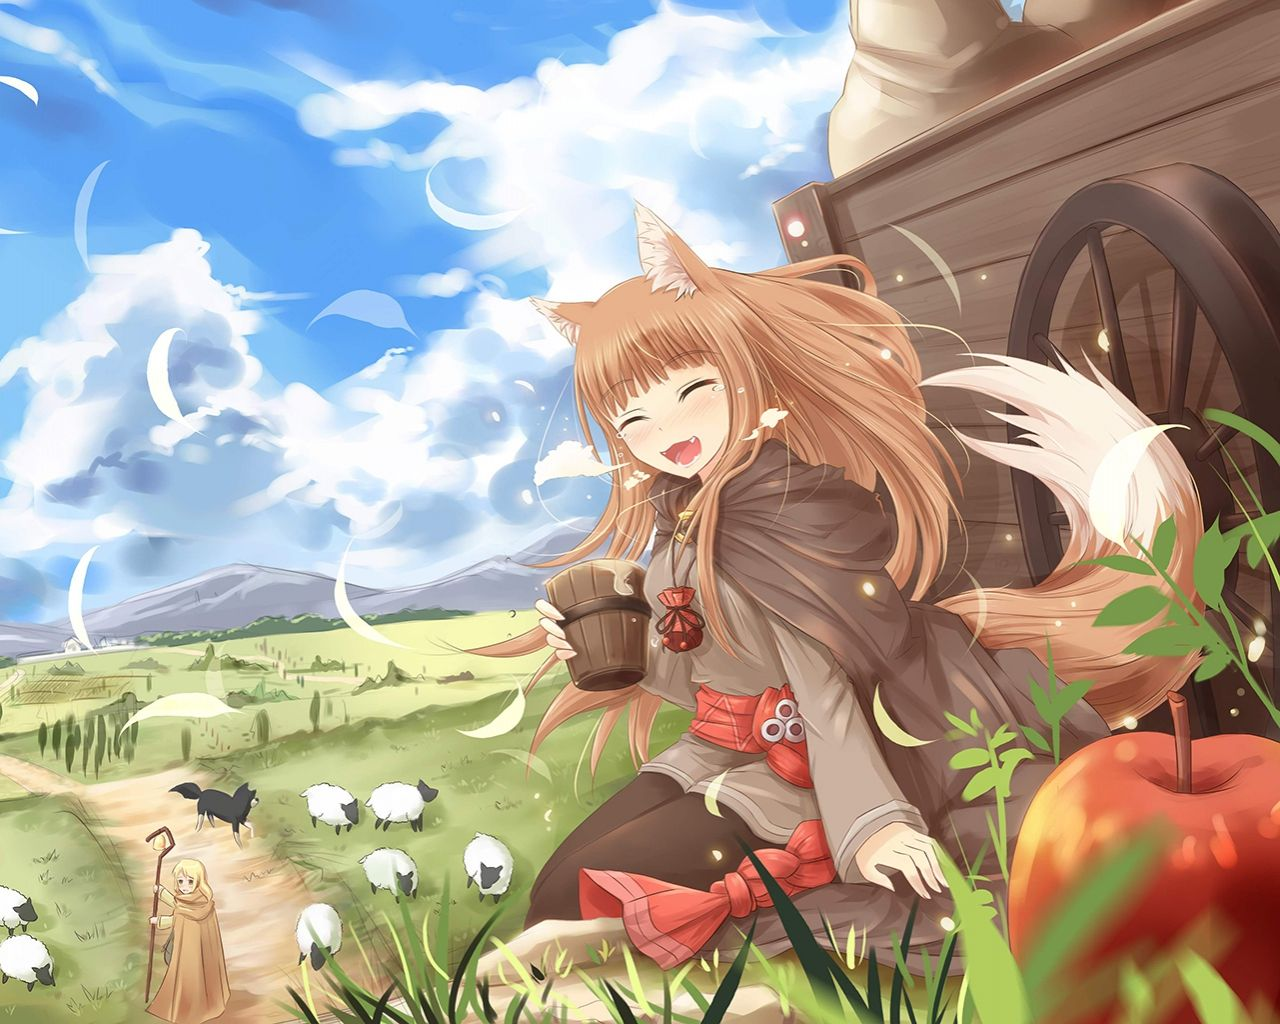 Spice and Wolf Holo the wise wolf e colors are just